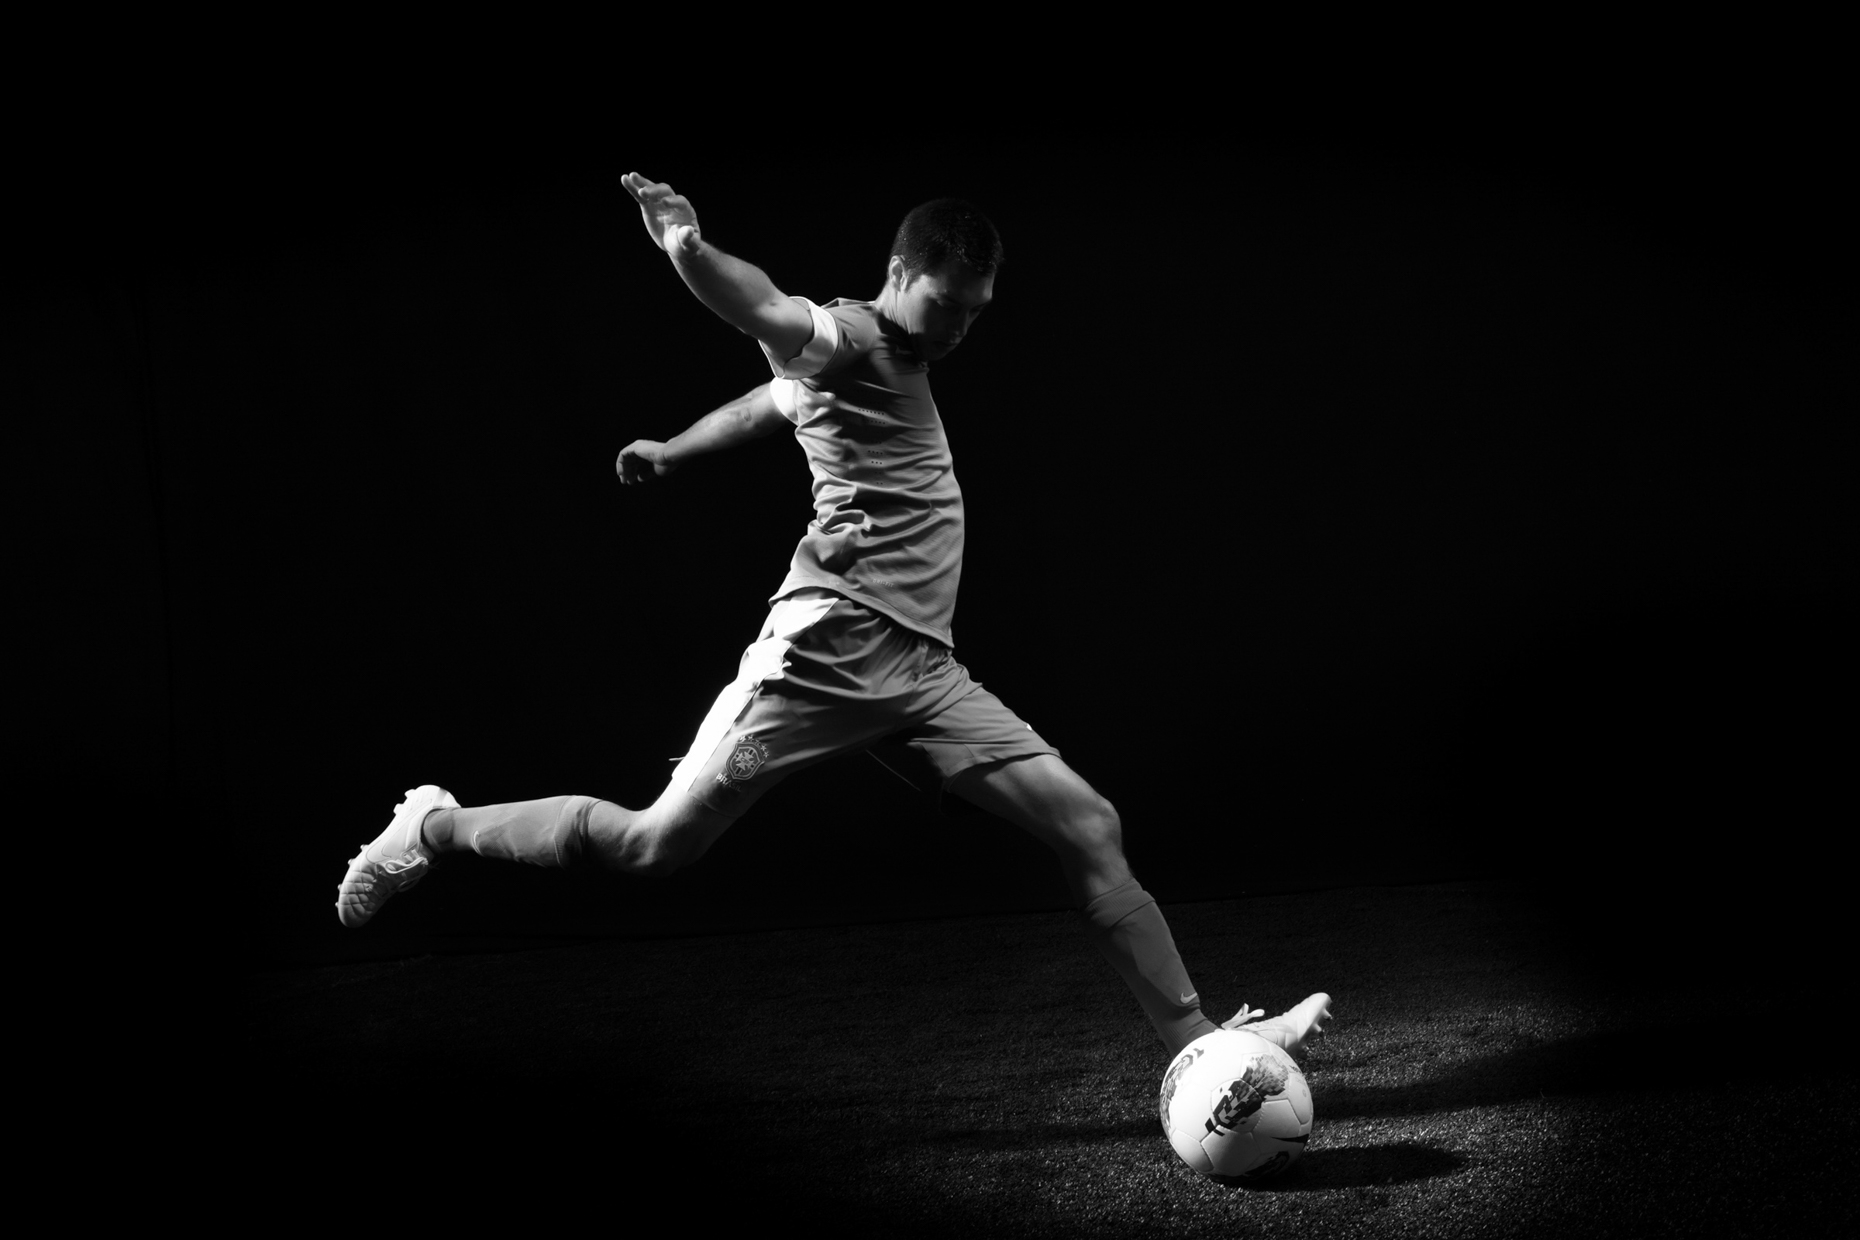 Dramatic soccer action for Nike futbol